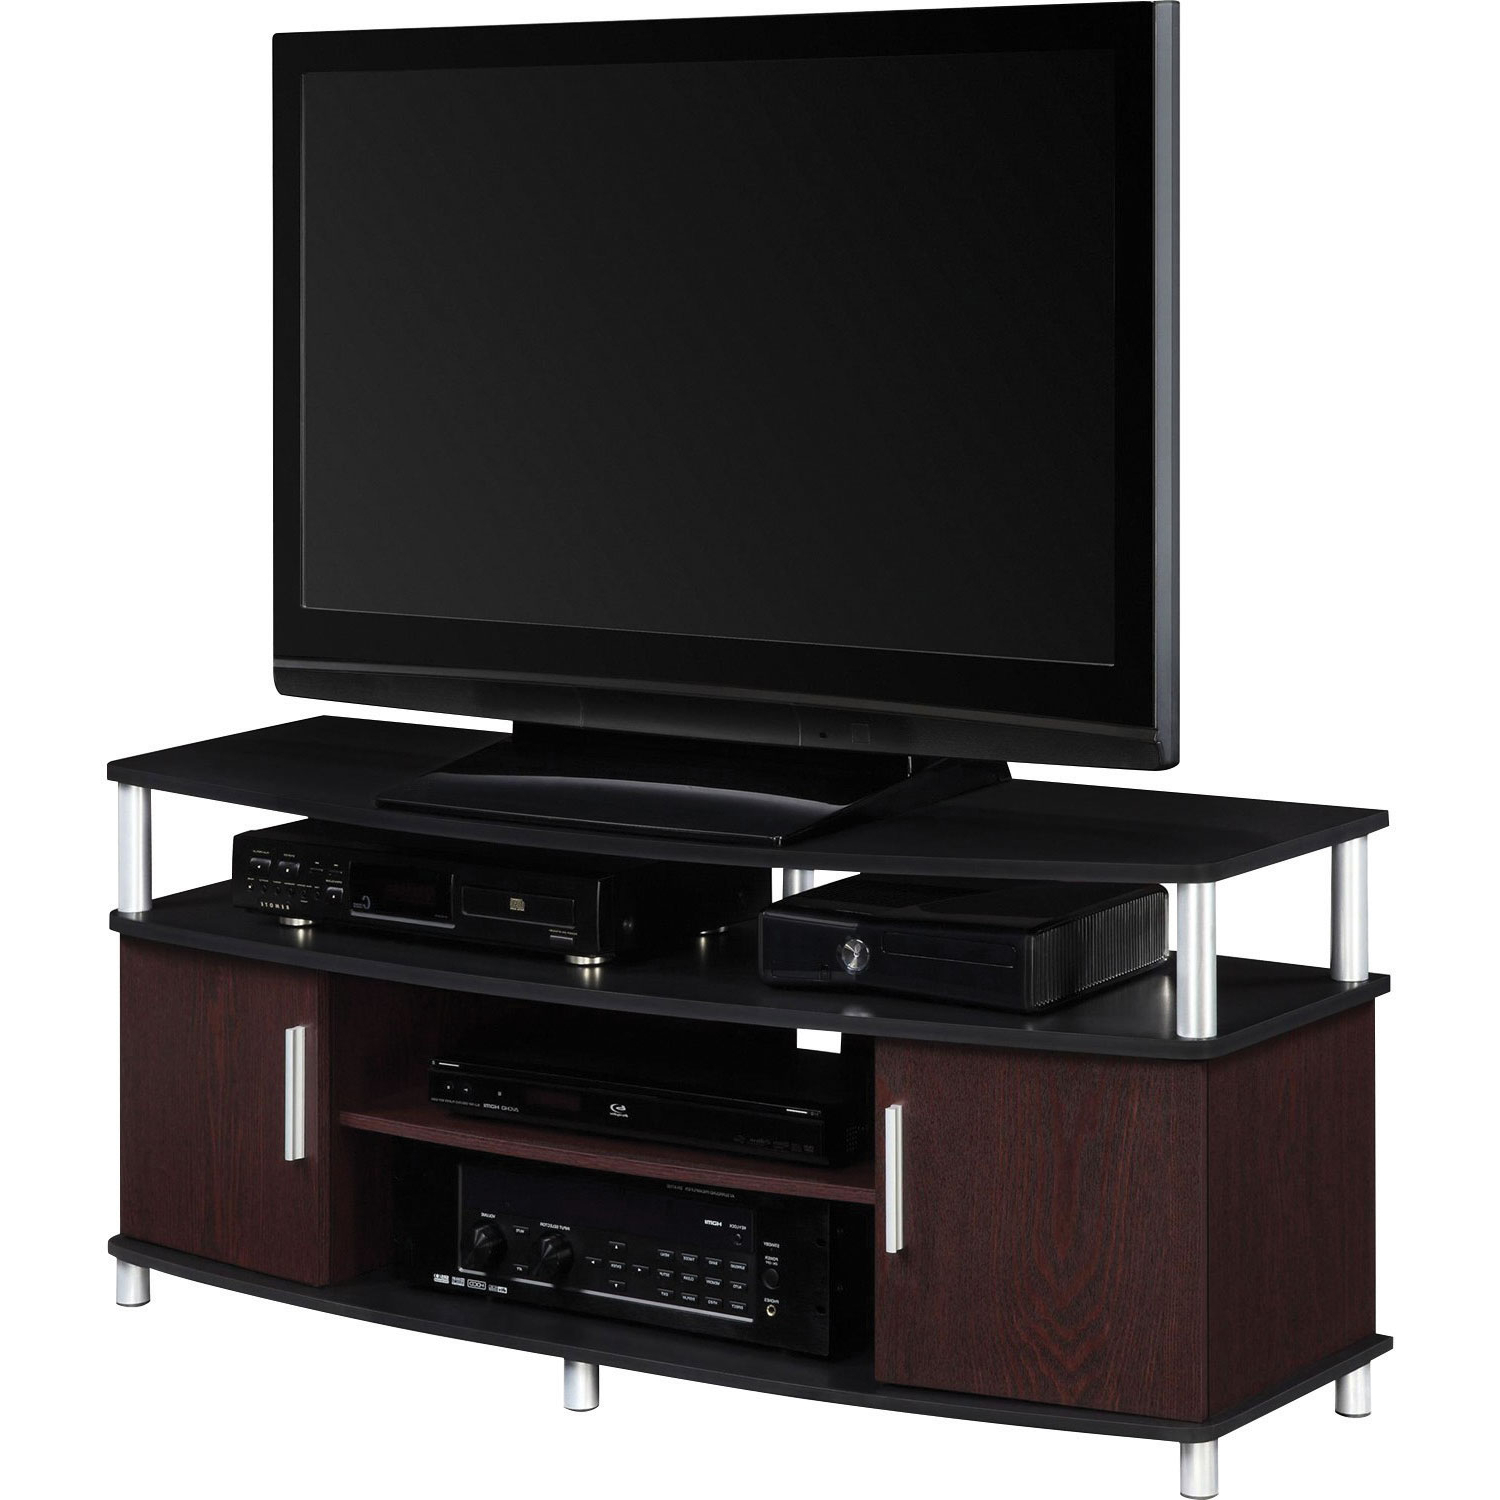 "Dorel Carson 50"" Tv Stand – Cherry/black : Tv Stands – Best Buy Canada Throughout 2017 Wooden Tv Stands For 50 Inch Tv (View 6 of 20)"